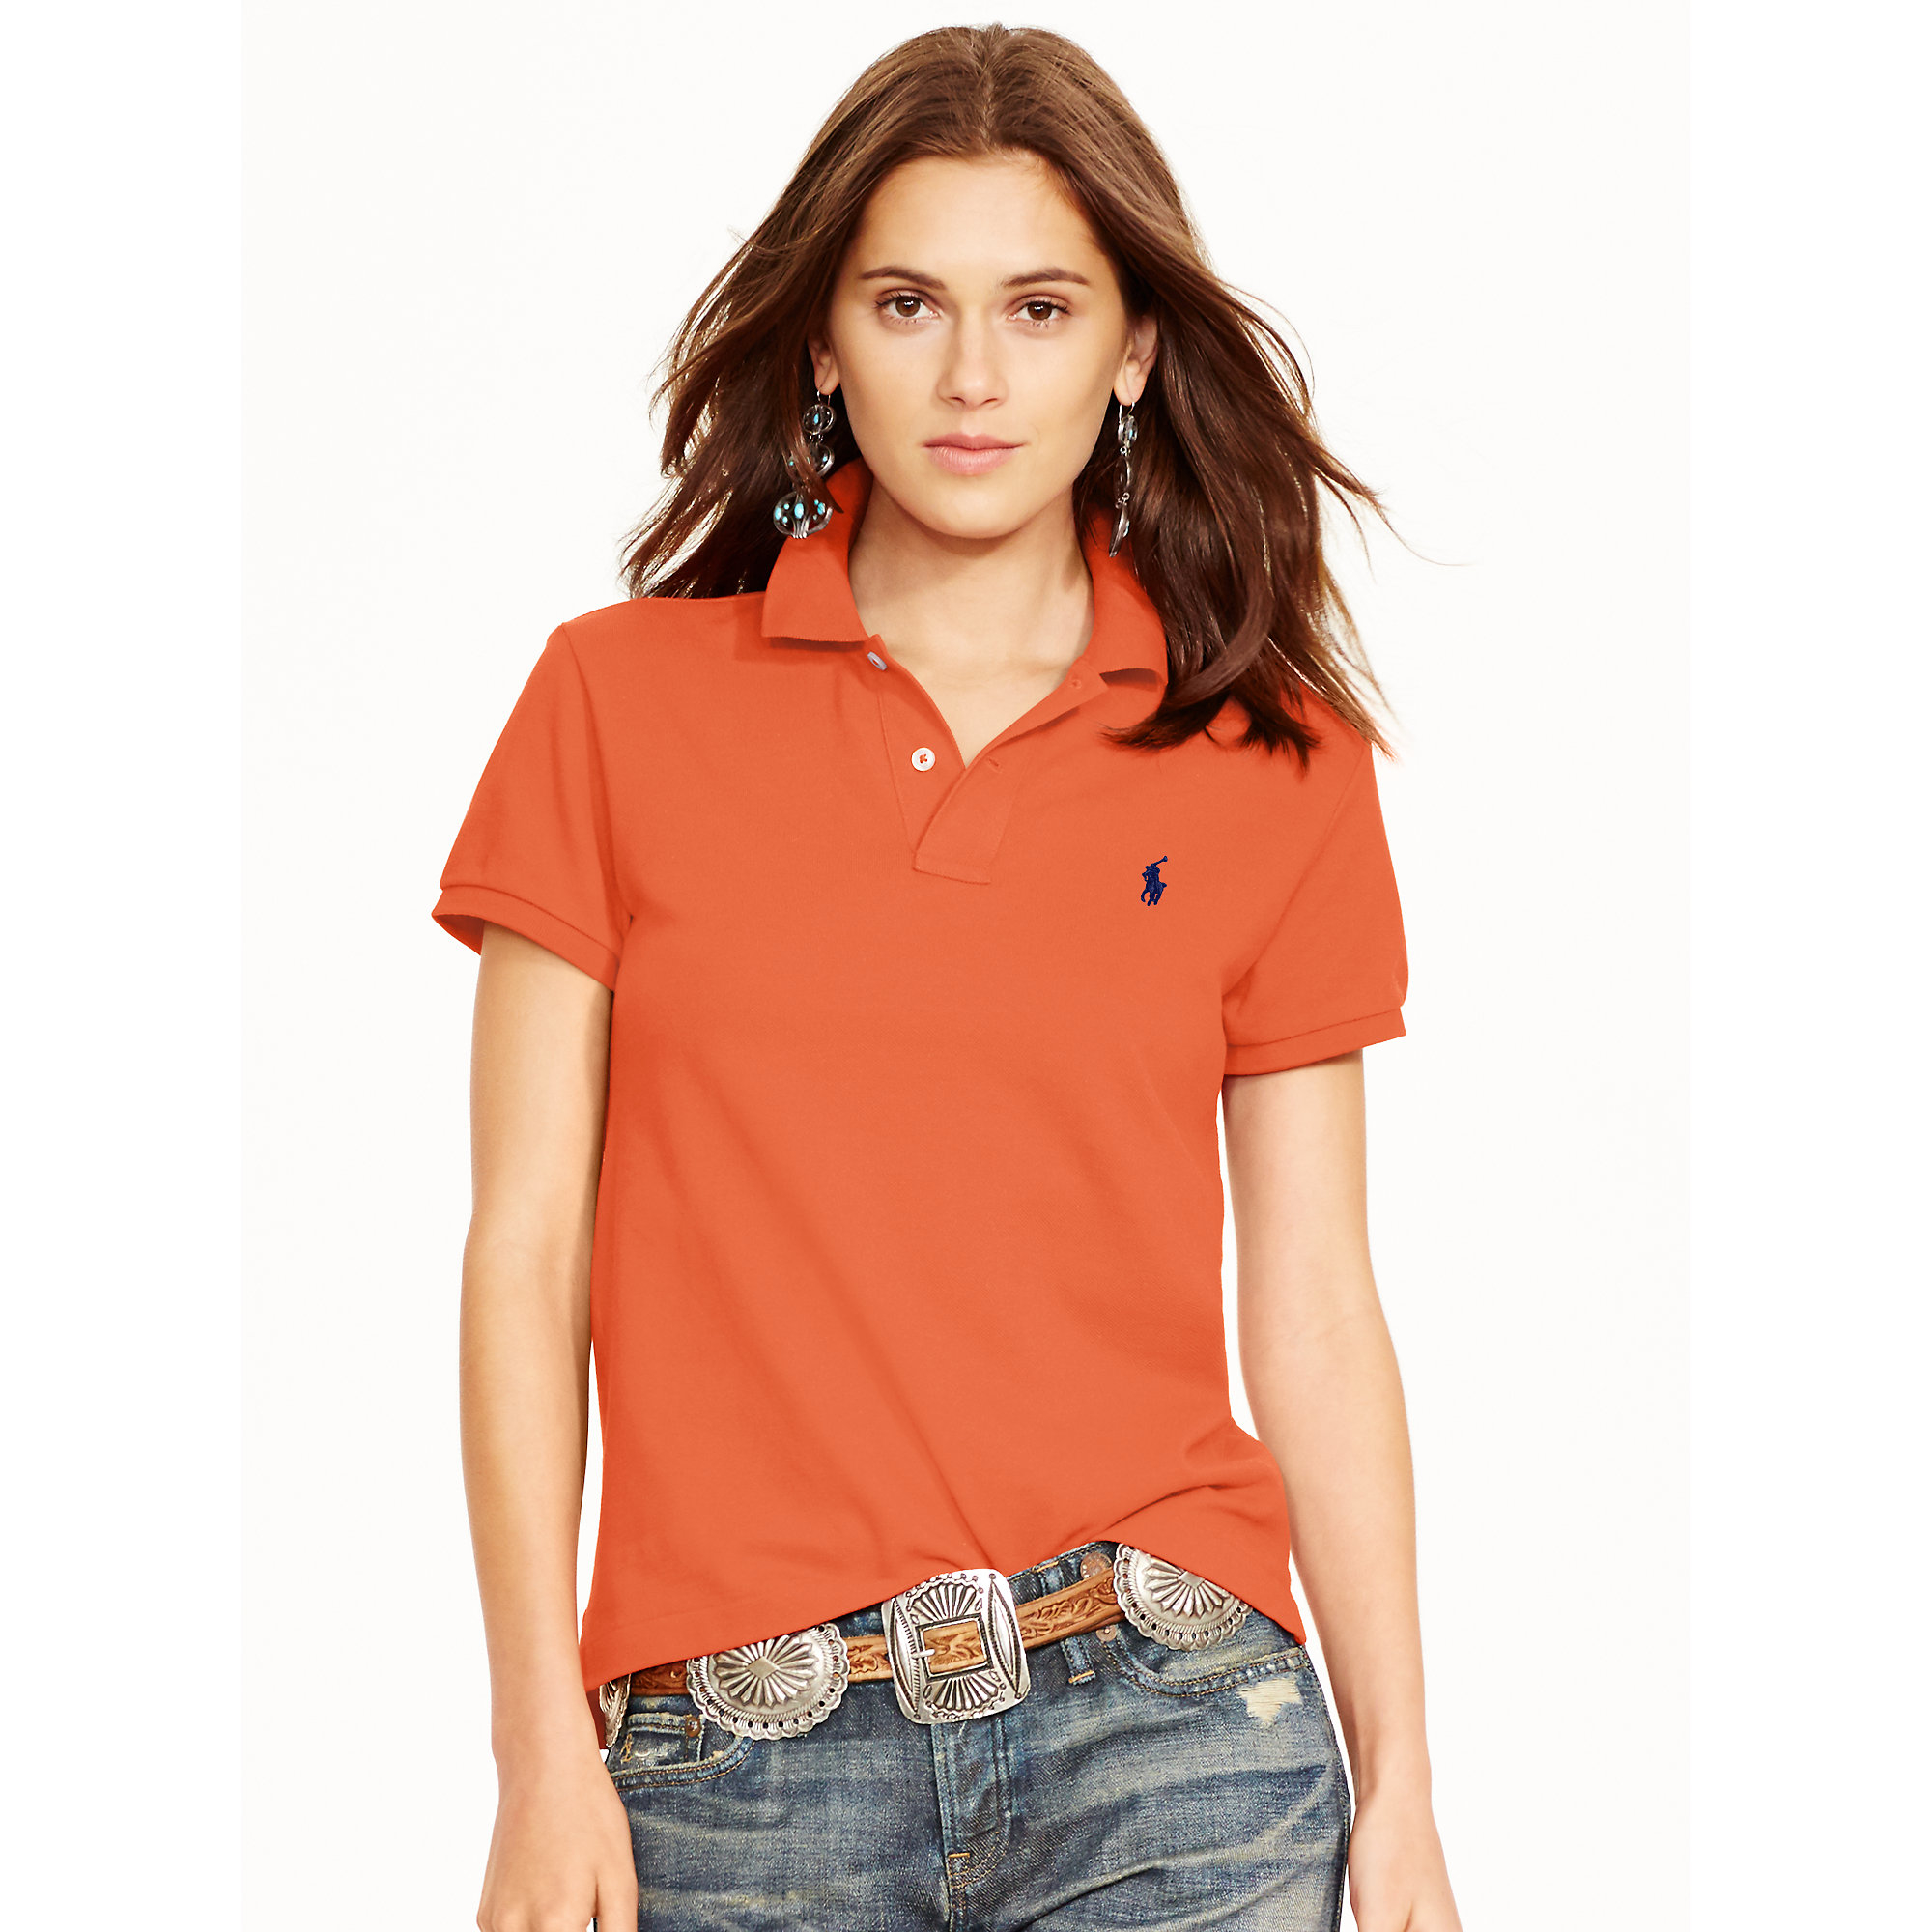 Lyst - Polo Ralph Lauren Classic-fit Polo Shirt in Red 78cfded81b